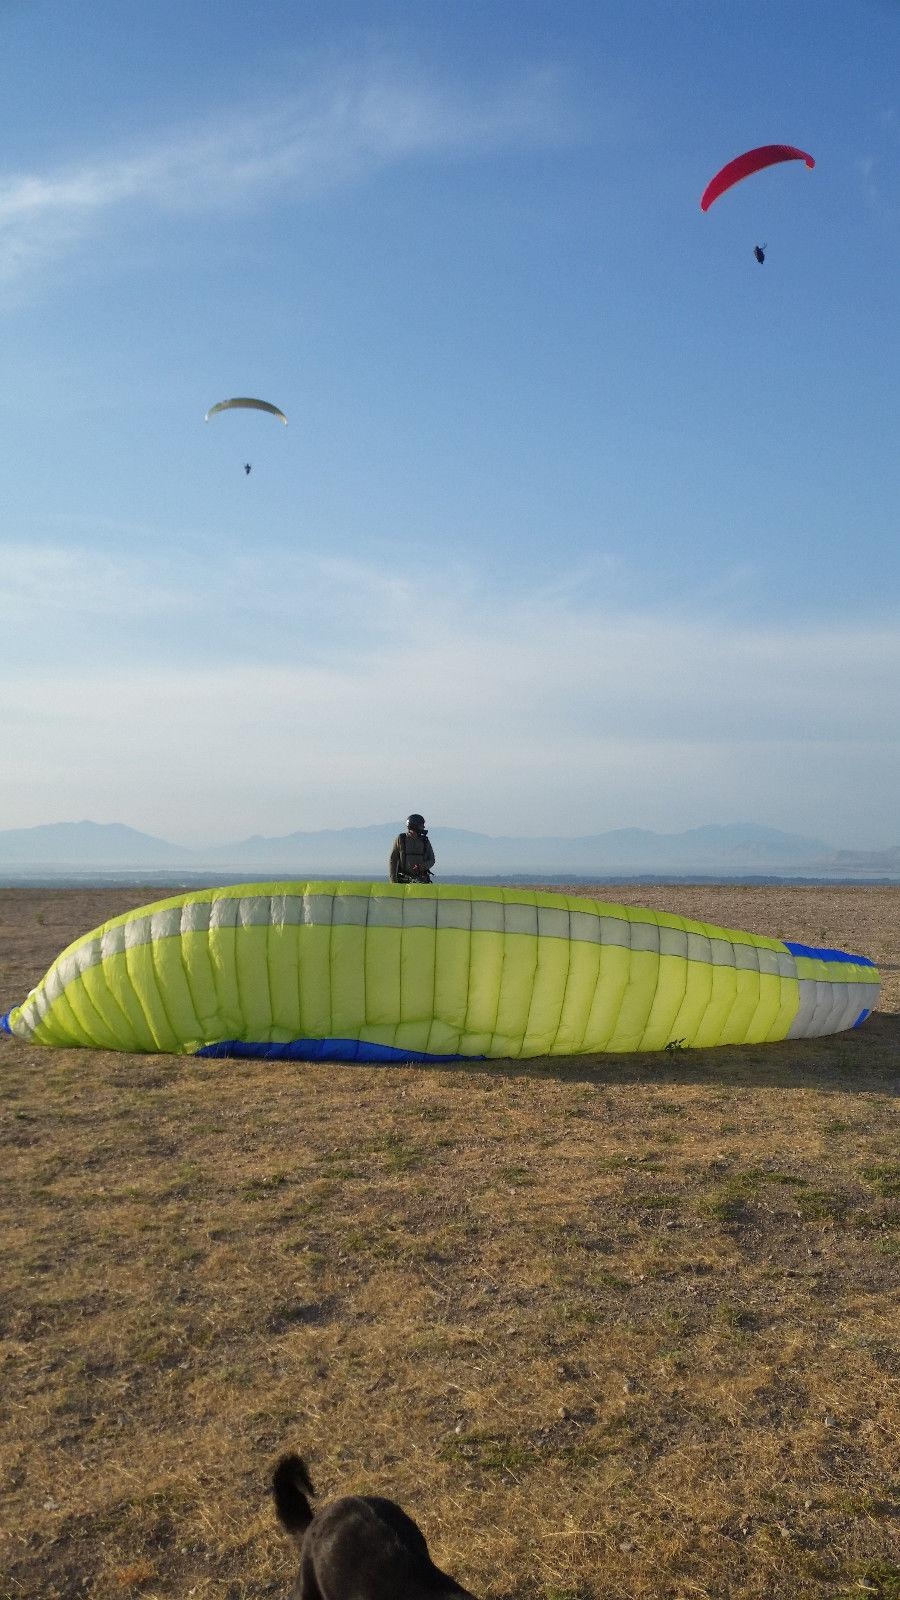 2017 777 Rook 2 paragliding wing ML95-115kg excellent condition less than 5 Hrs - main image